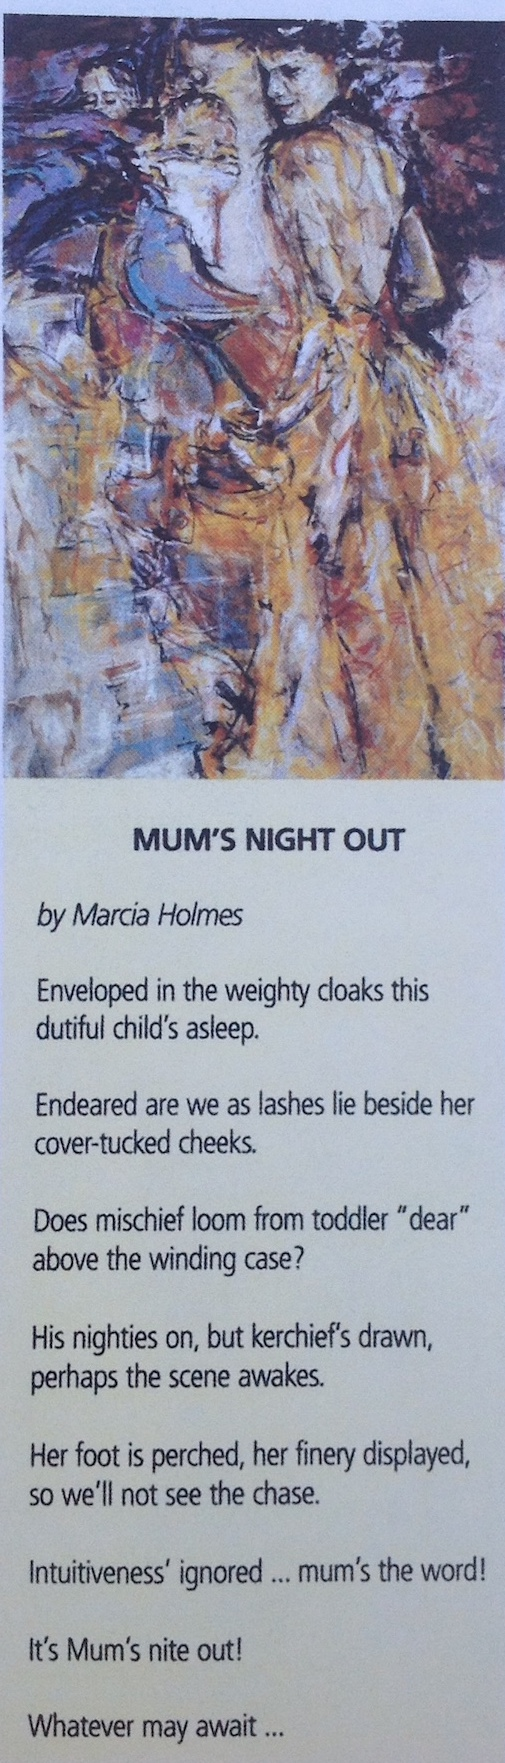 """Marcia Holmes, """"Mum's Night Out,"""" Poem & Painting published in Inside Northside Magazine, 2004"""